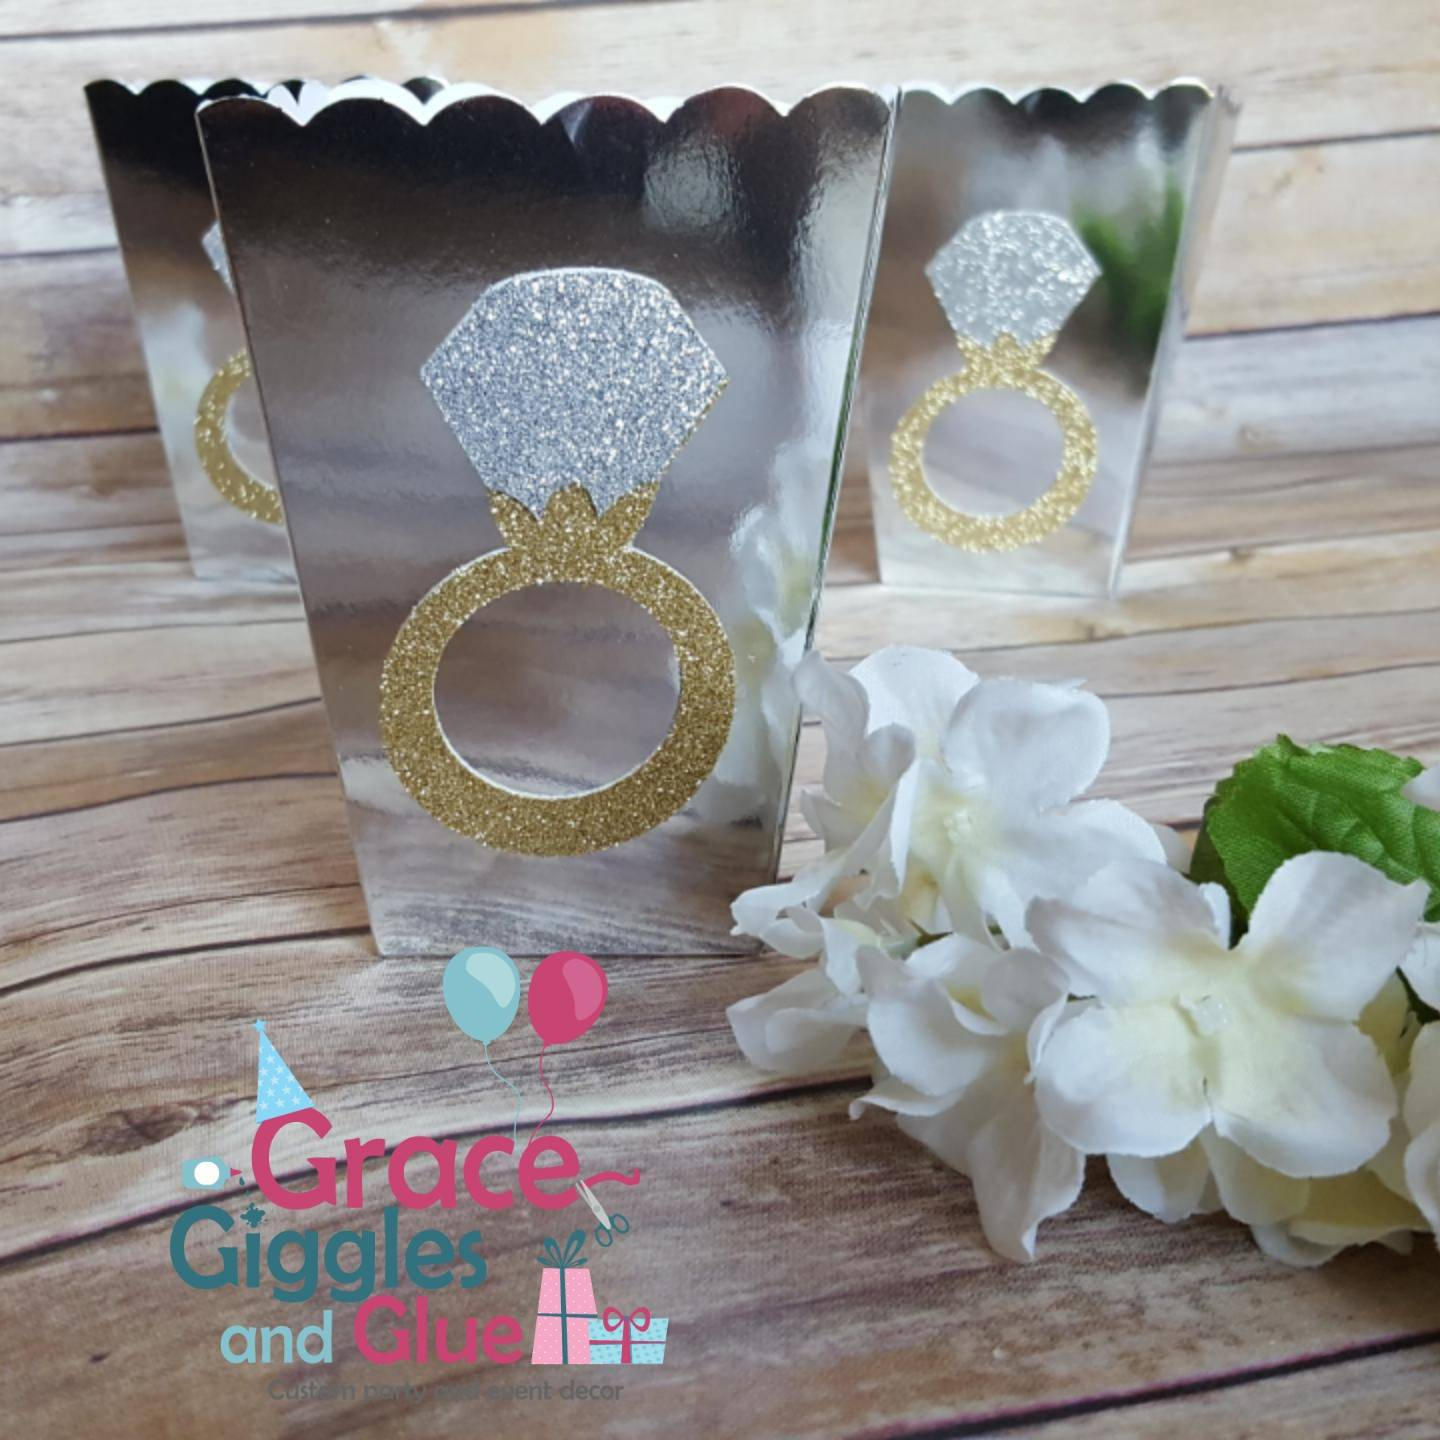 10 Gold Or Silver Glitter Diamond Ring Themed Favor Boxes. Matte Silver Wedding Rings. Jewelry Macy's Wedding Rings. Hollow Rings. Elegant Yellow Gold Wedding Rings. Key Chain Rings. 3 Stone Rings. Leaf Motif Engagement Rings. Kendra Scott Rings